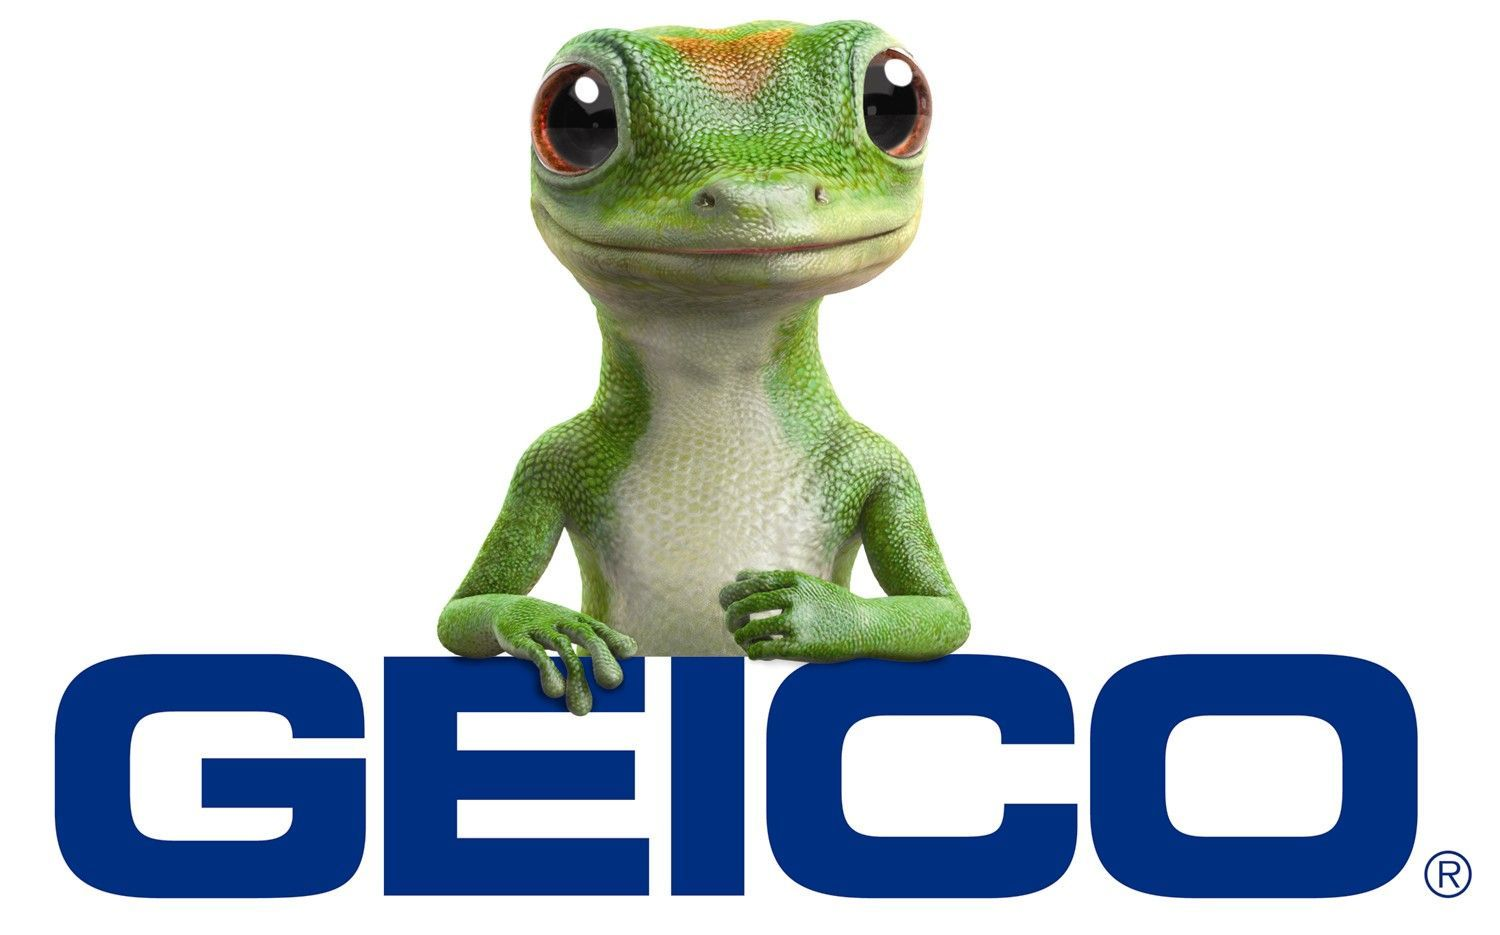 Geico Customer Service Numbers Geico Car Insurance Best Car